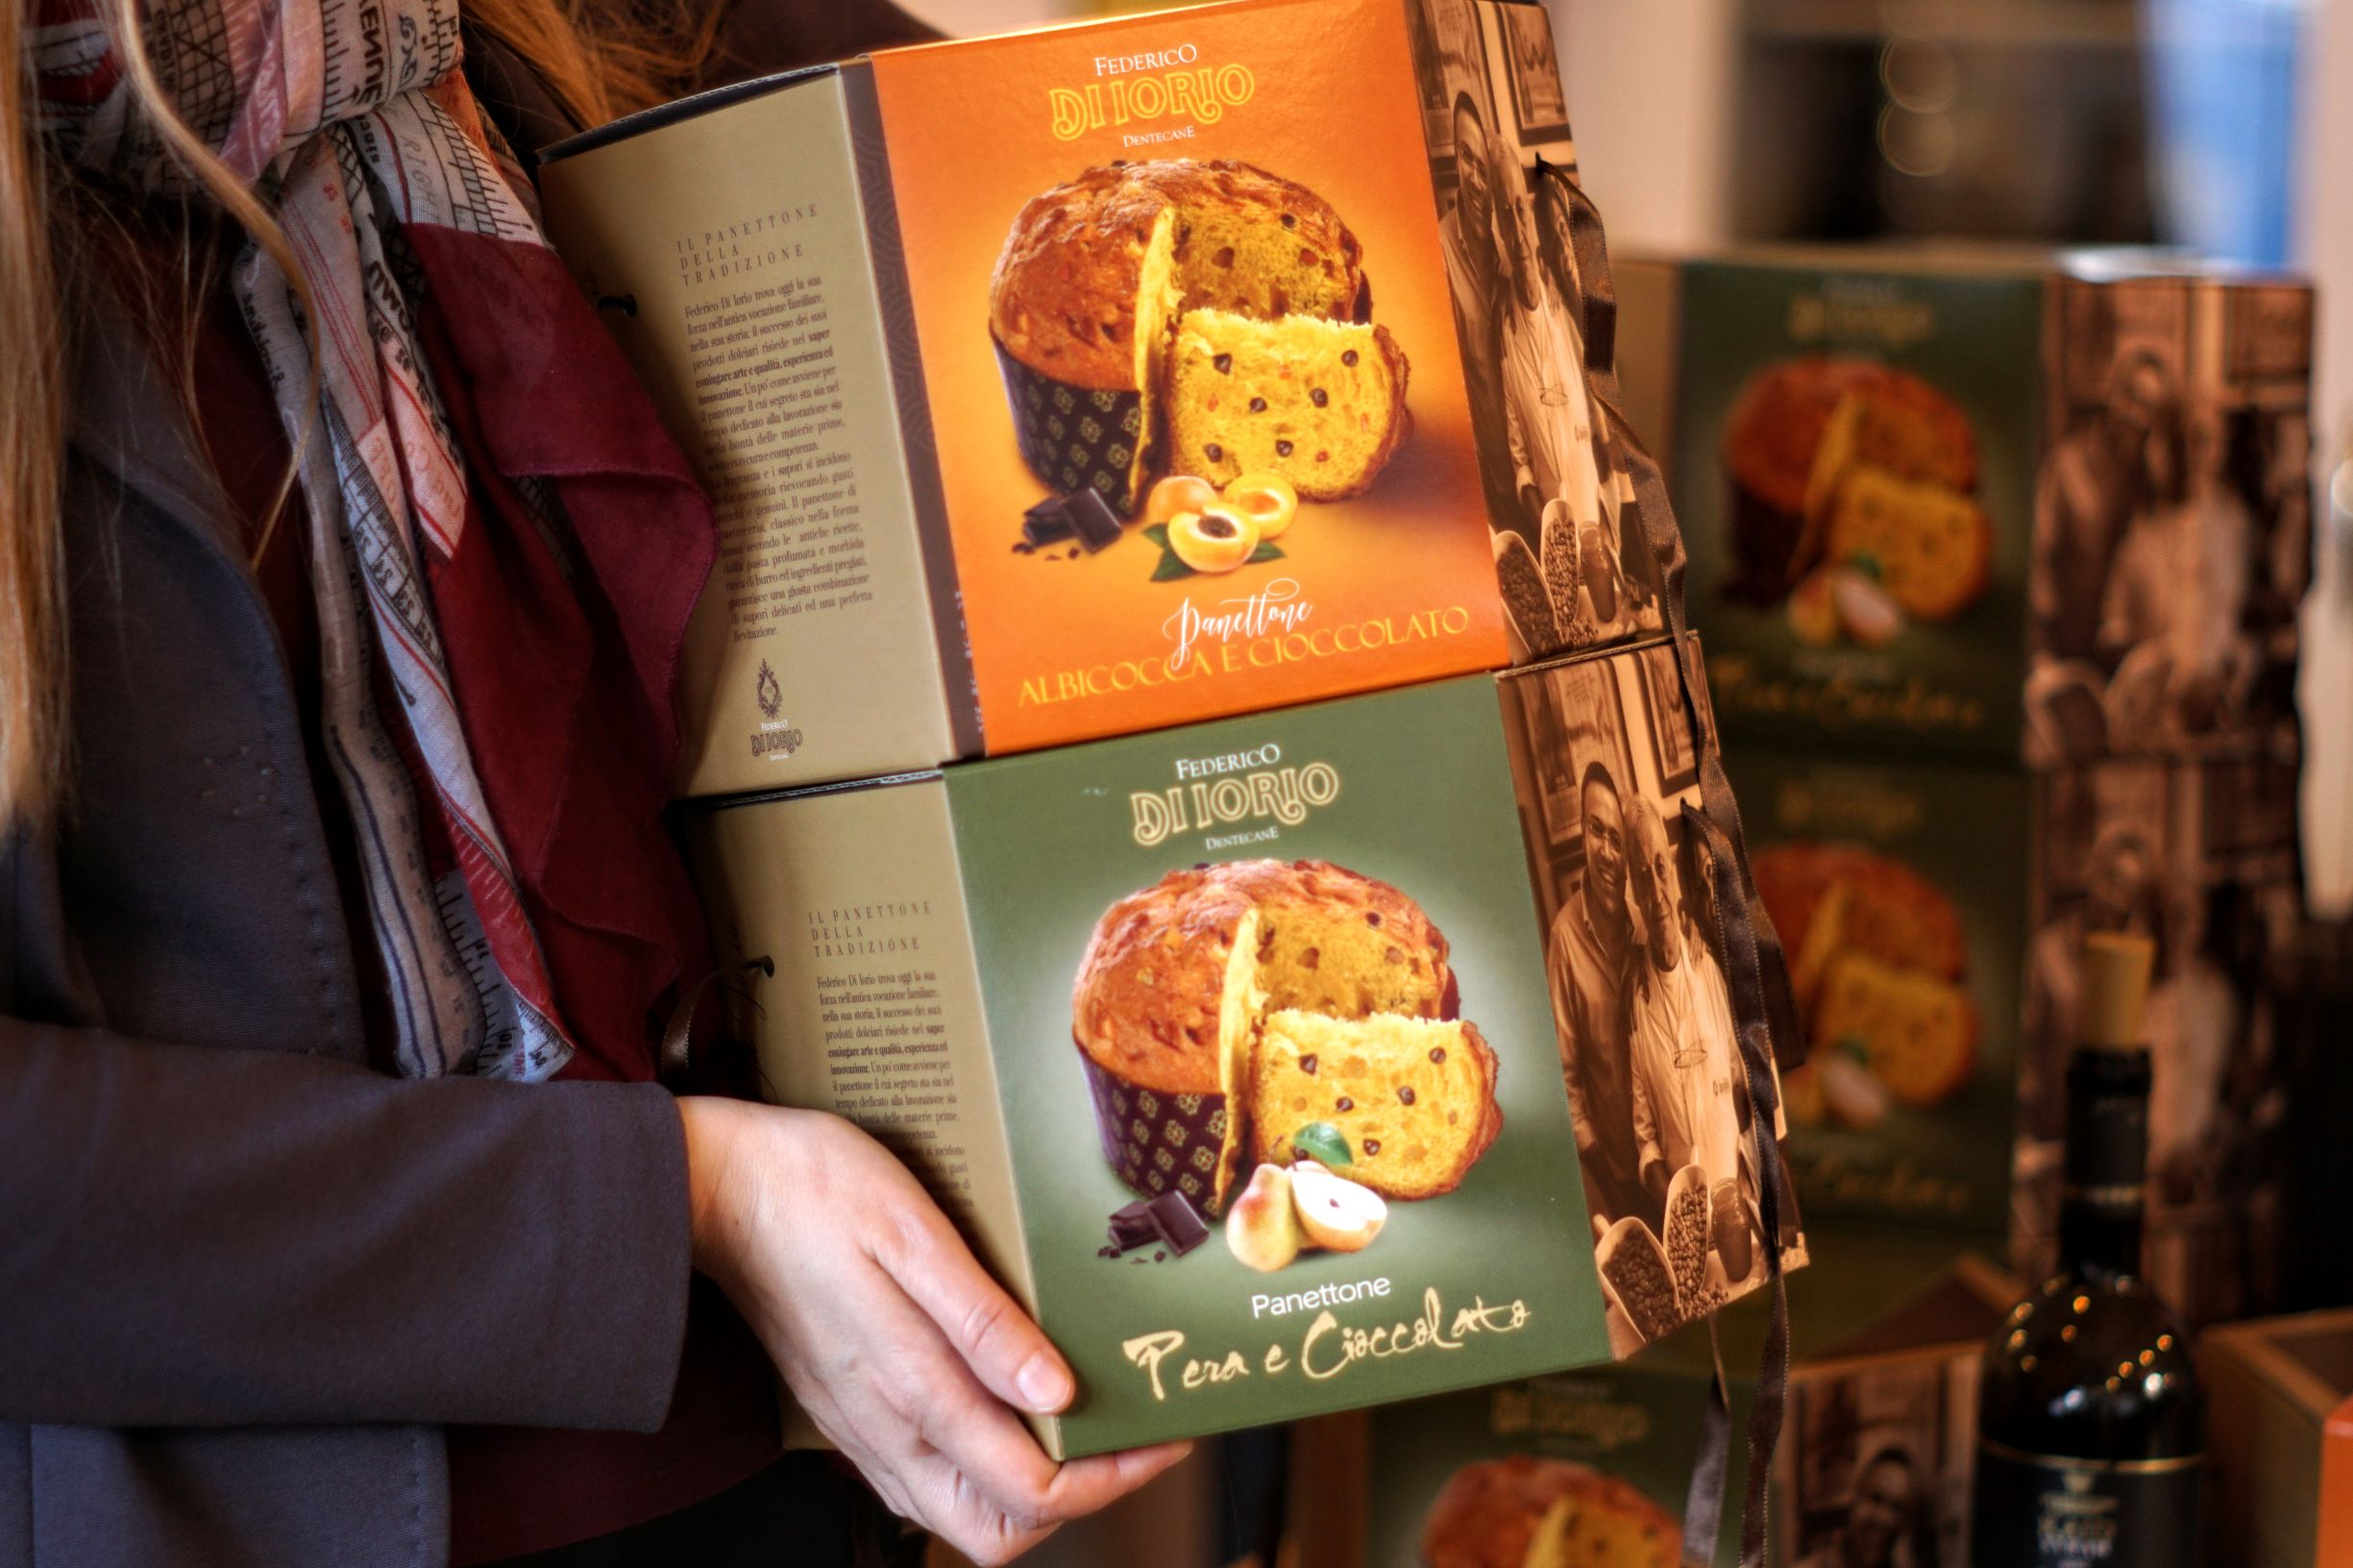 Panettone in scatola